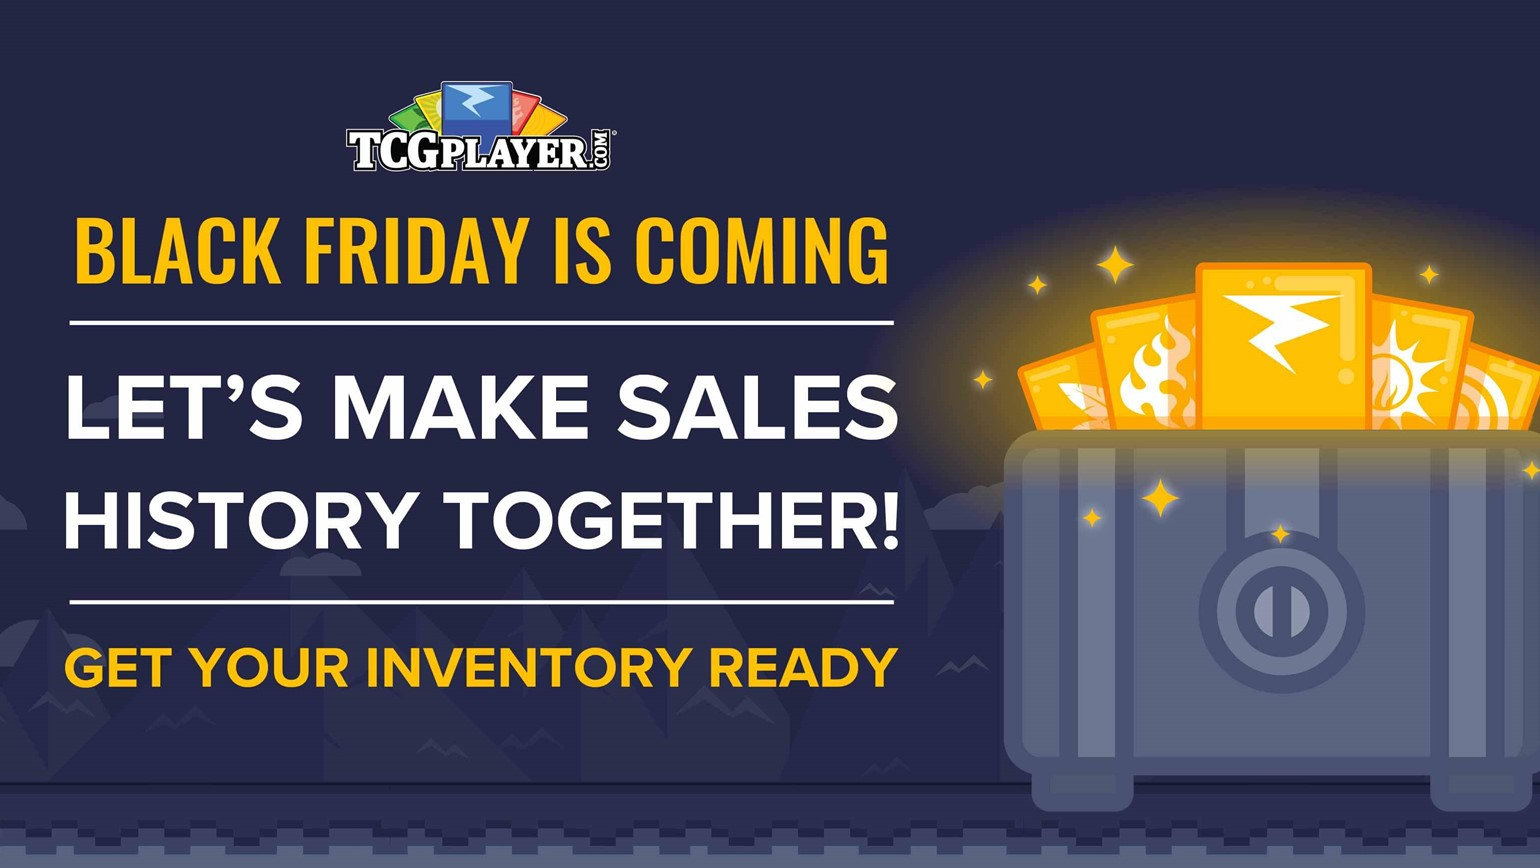 Get Ready to Set Sales Records This Black Friday—Add Inventory Now!